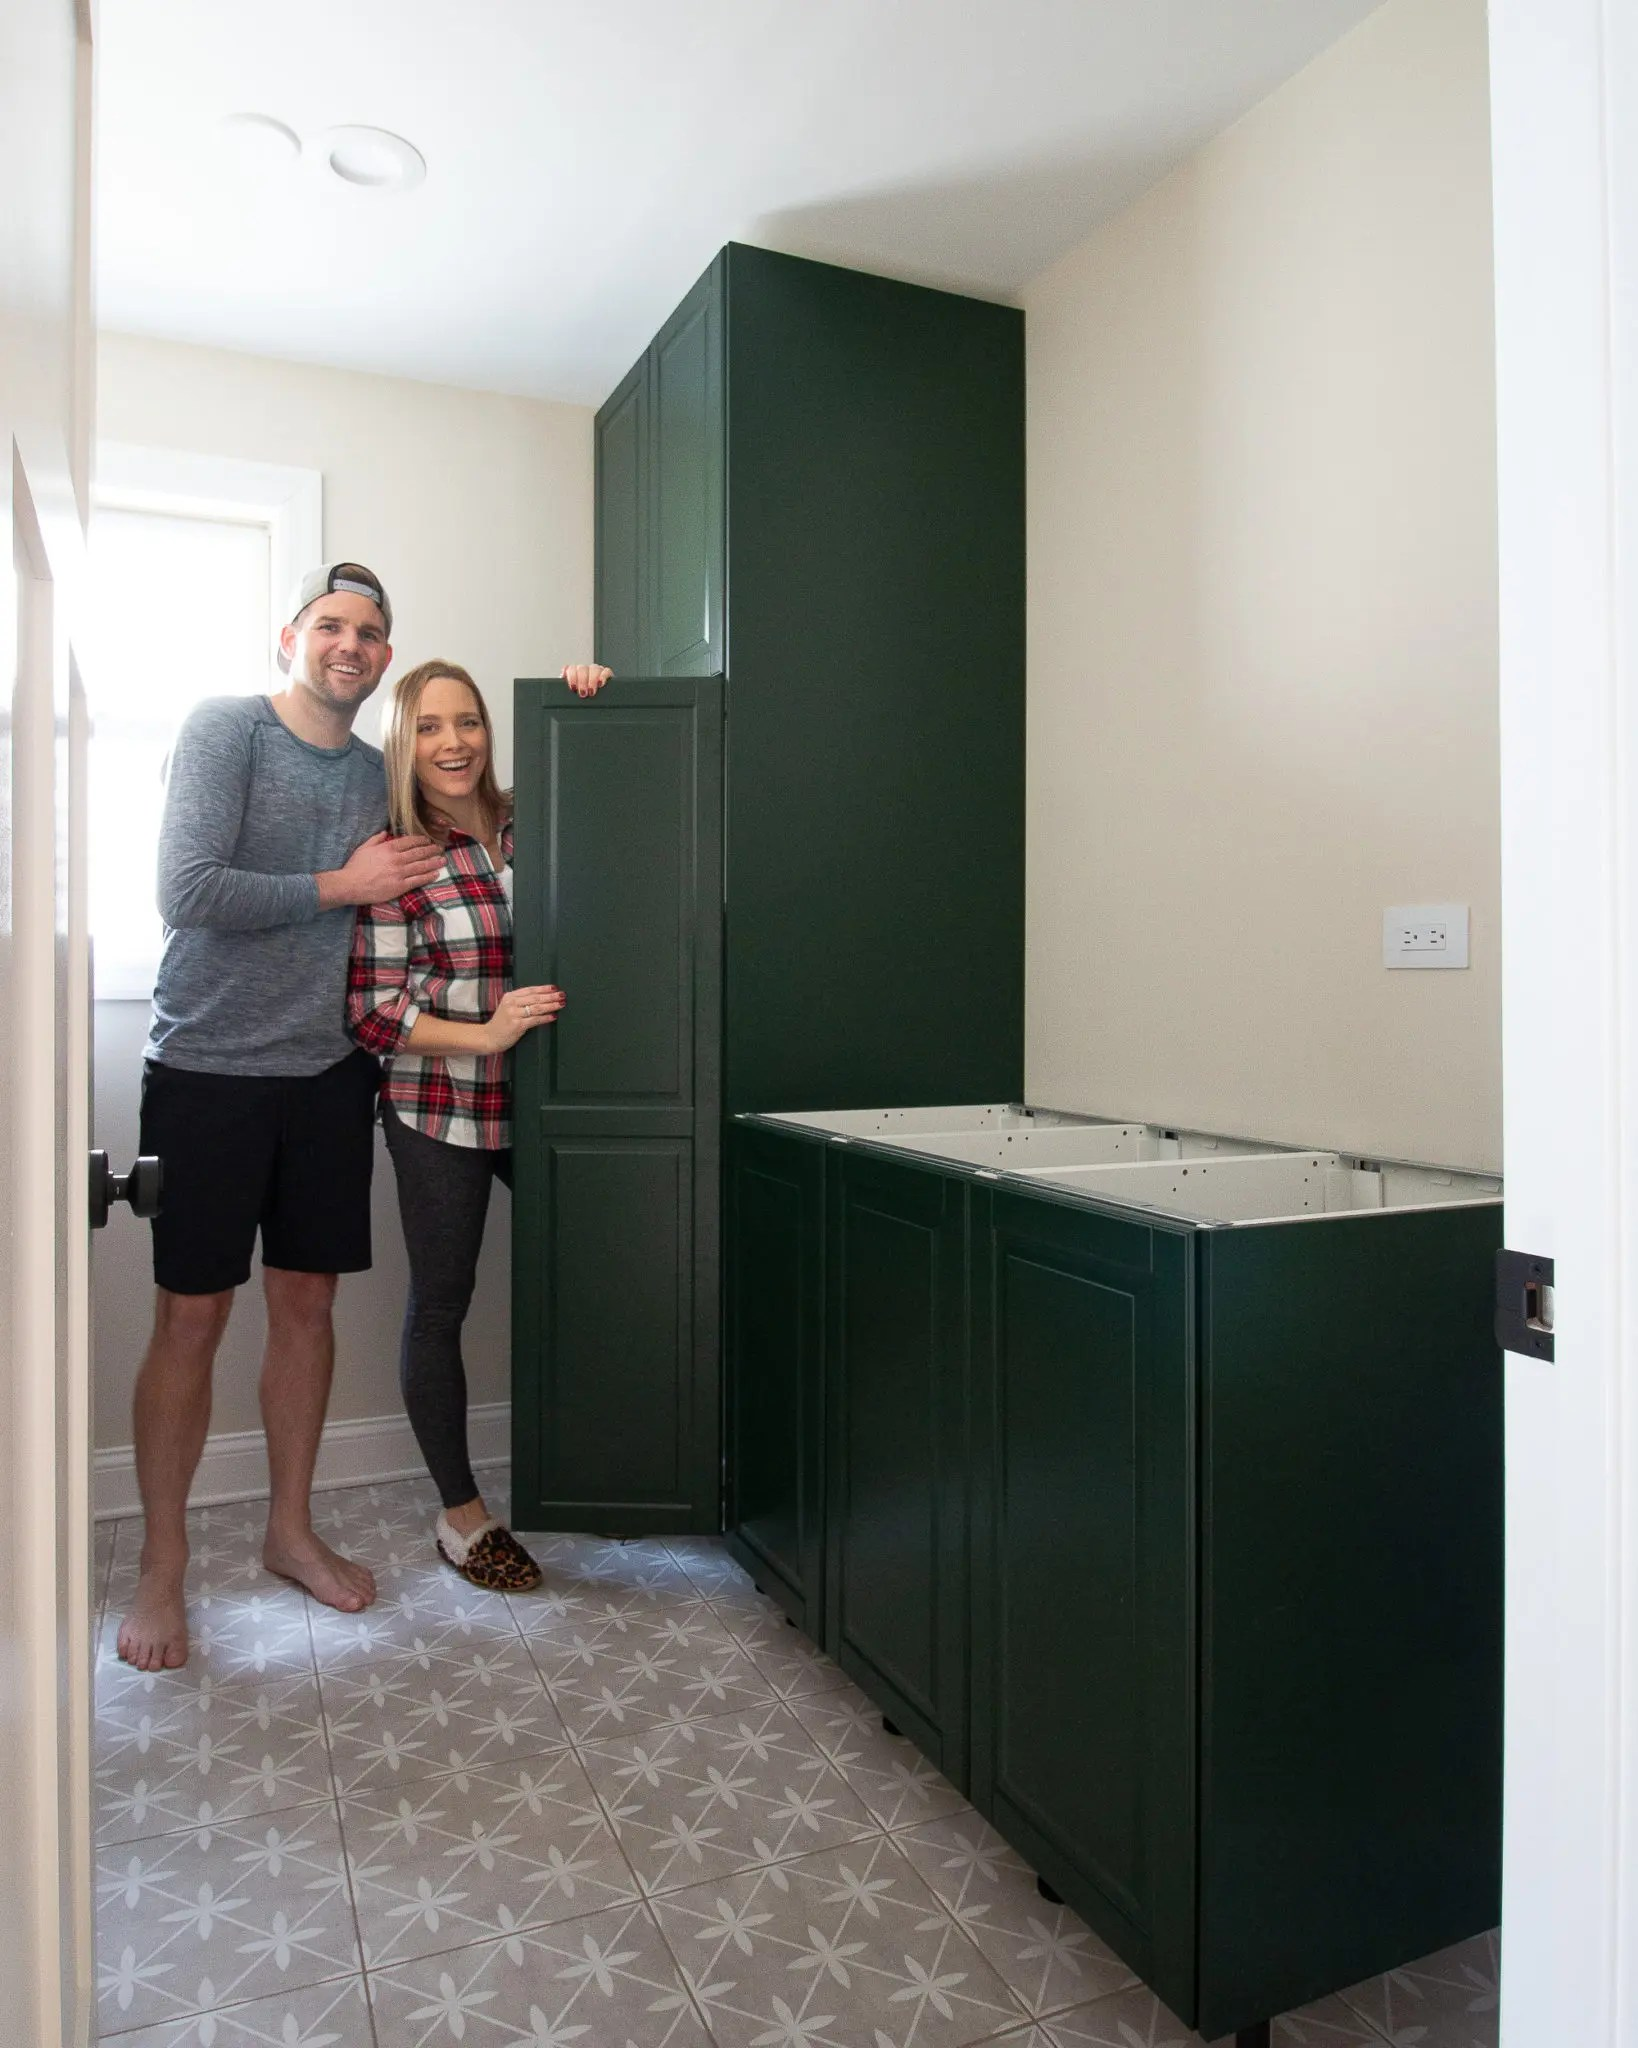 9 Tips To Install Ikea Kitchen Cabinets The Diy Playbook